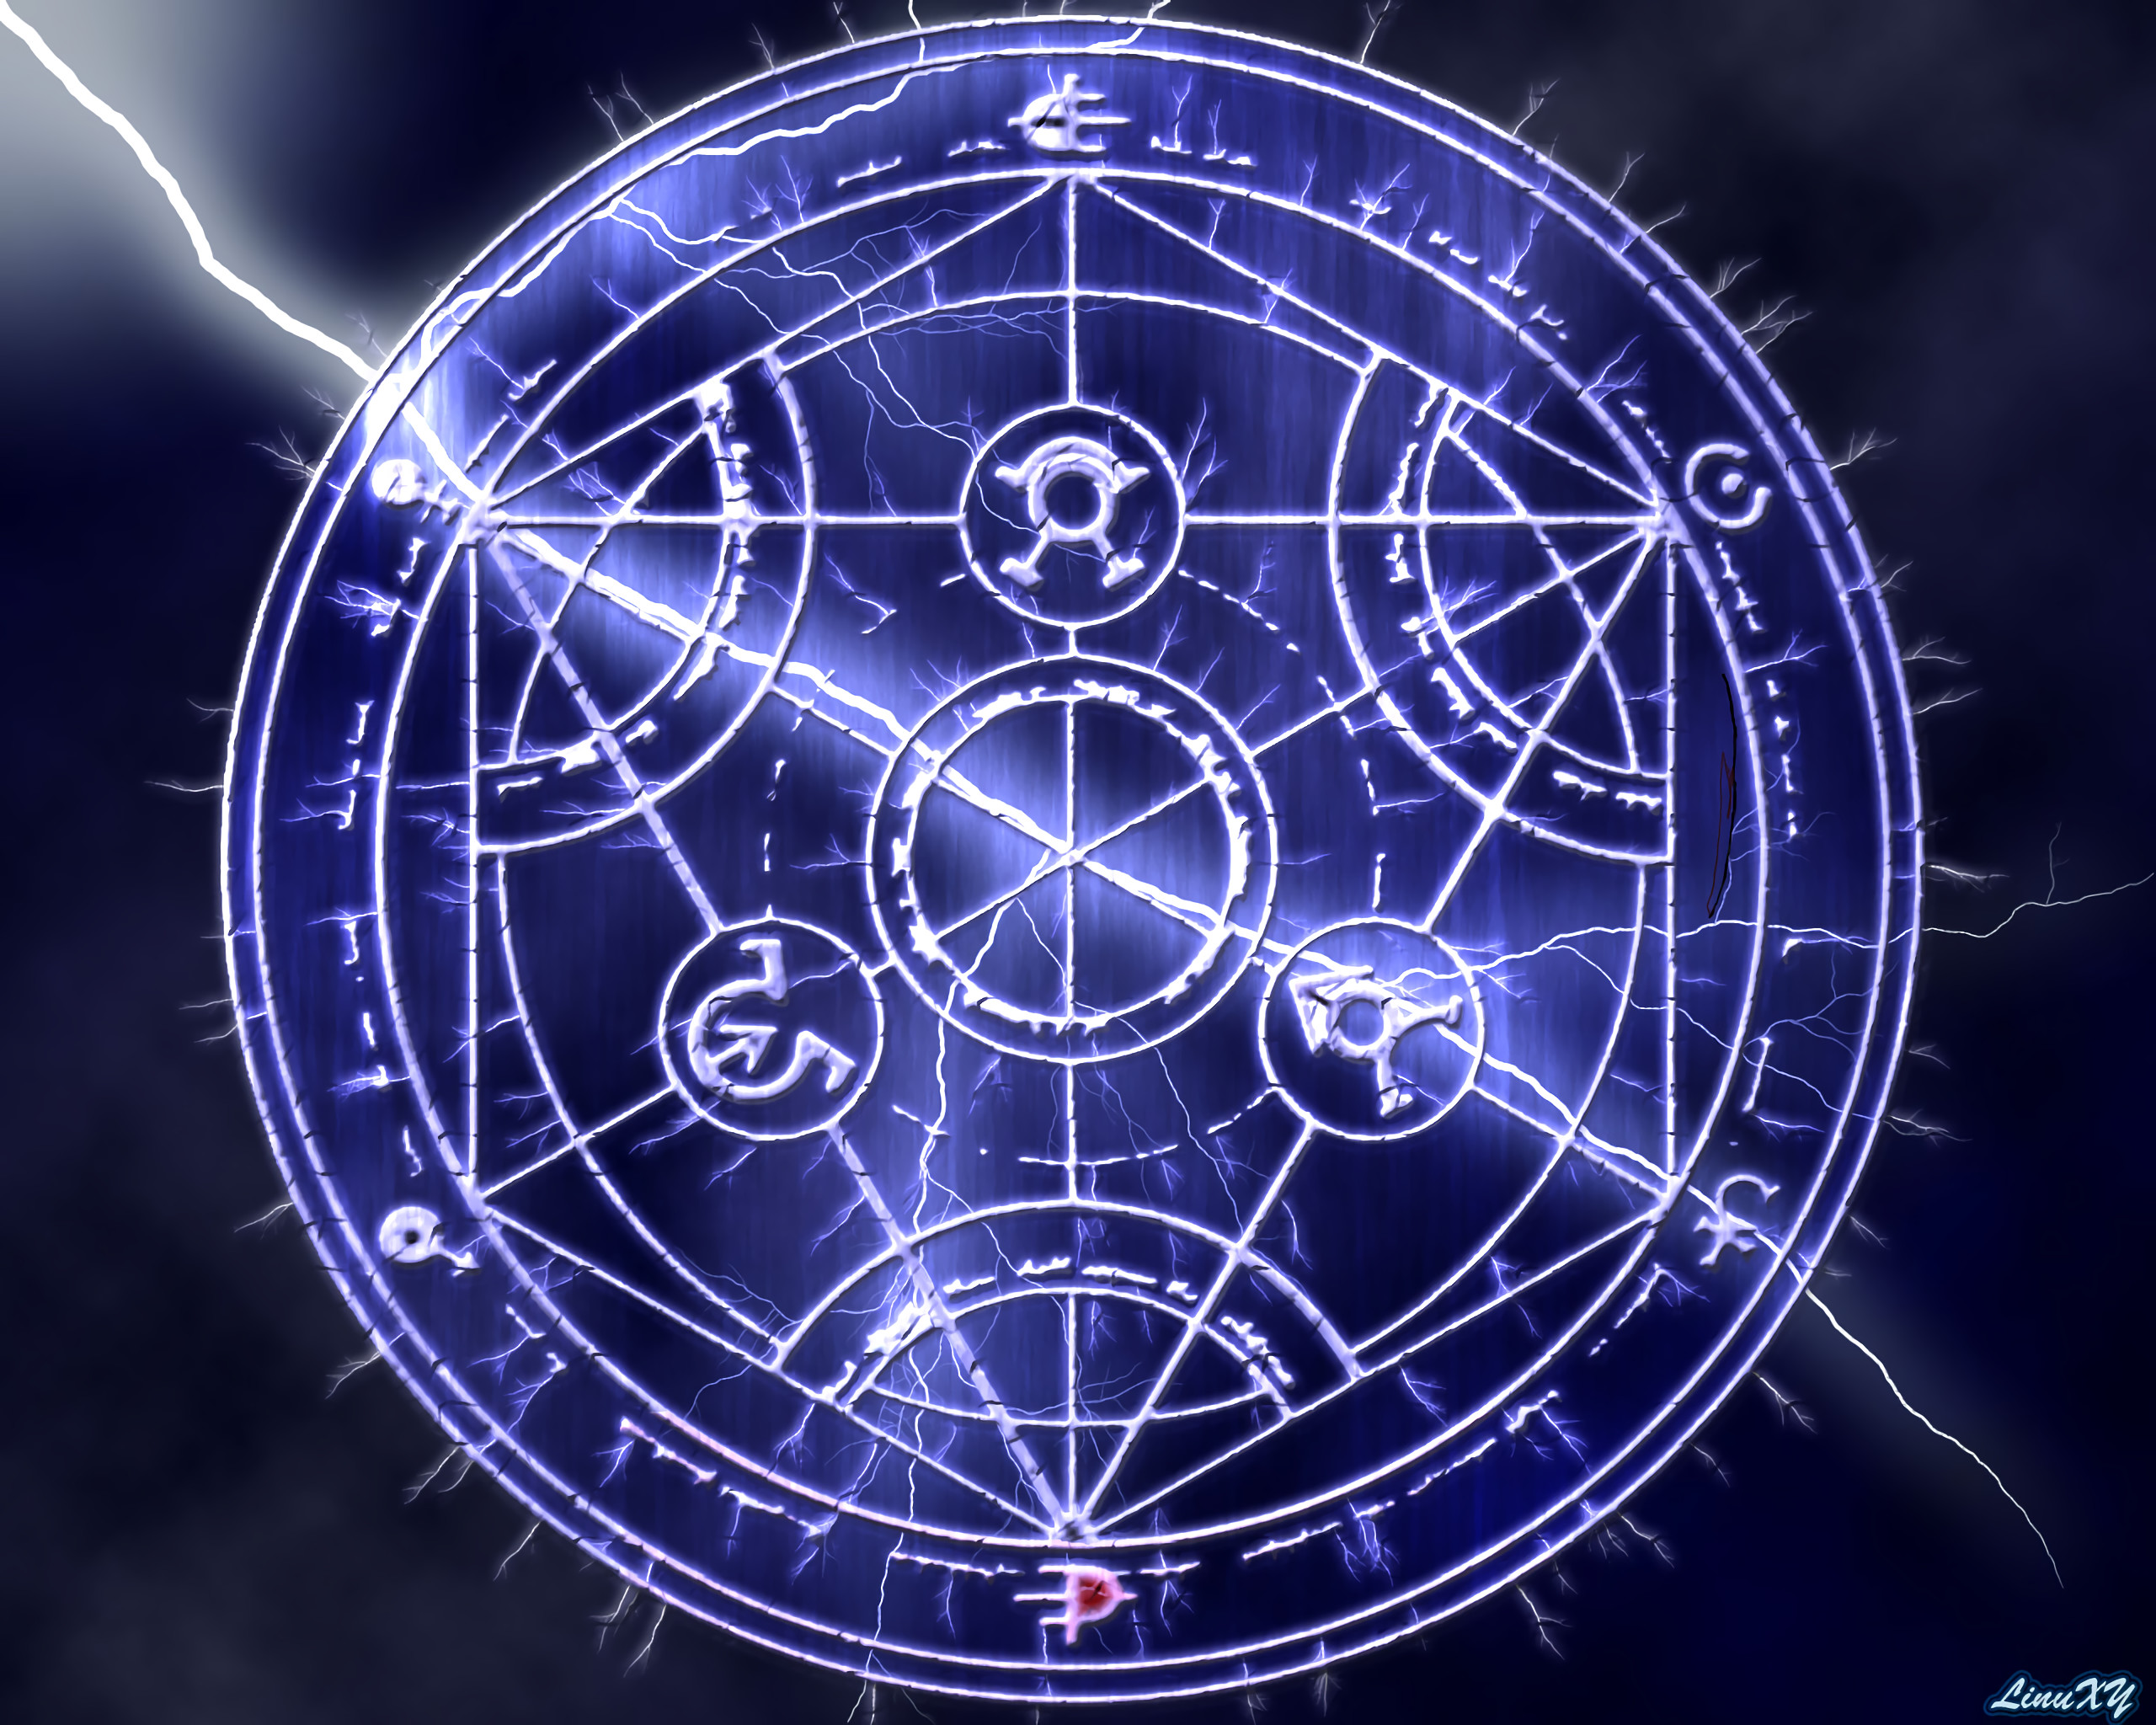 Explore More Wallpapers in the FullMetal Alchemist Subcategory!